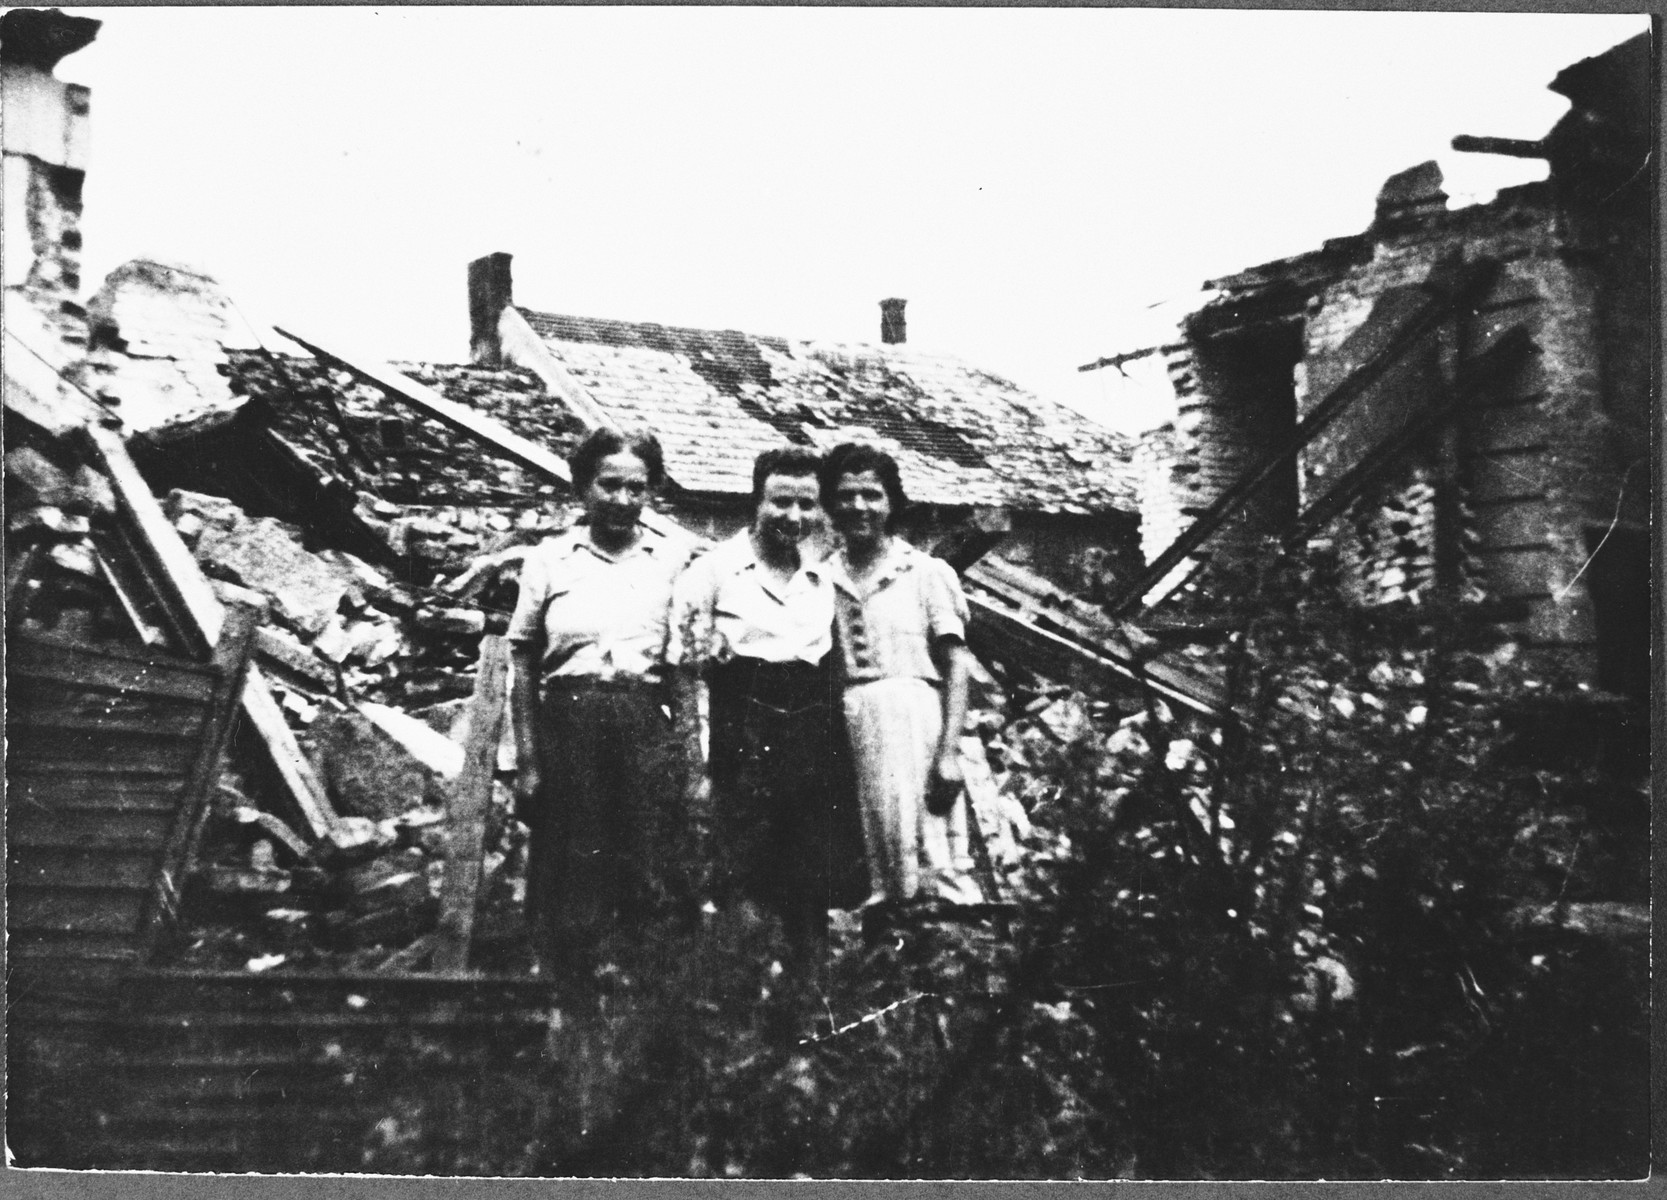 Italian survivors of Theresienstadt stand next to some destroyed buildings on their way home to Italy.  Anna Cassuto is on the left.  Her friend, Amalia Navaro, is on the right.